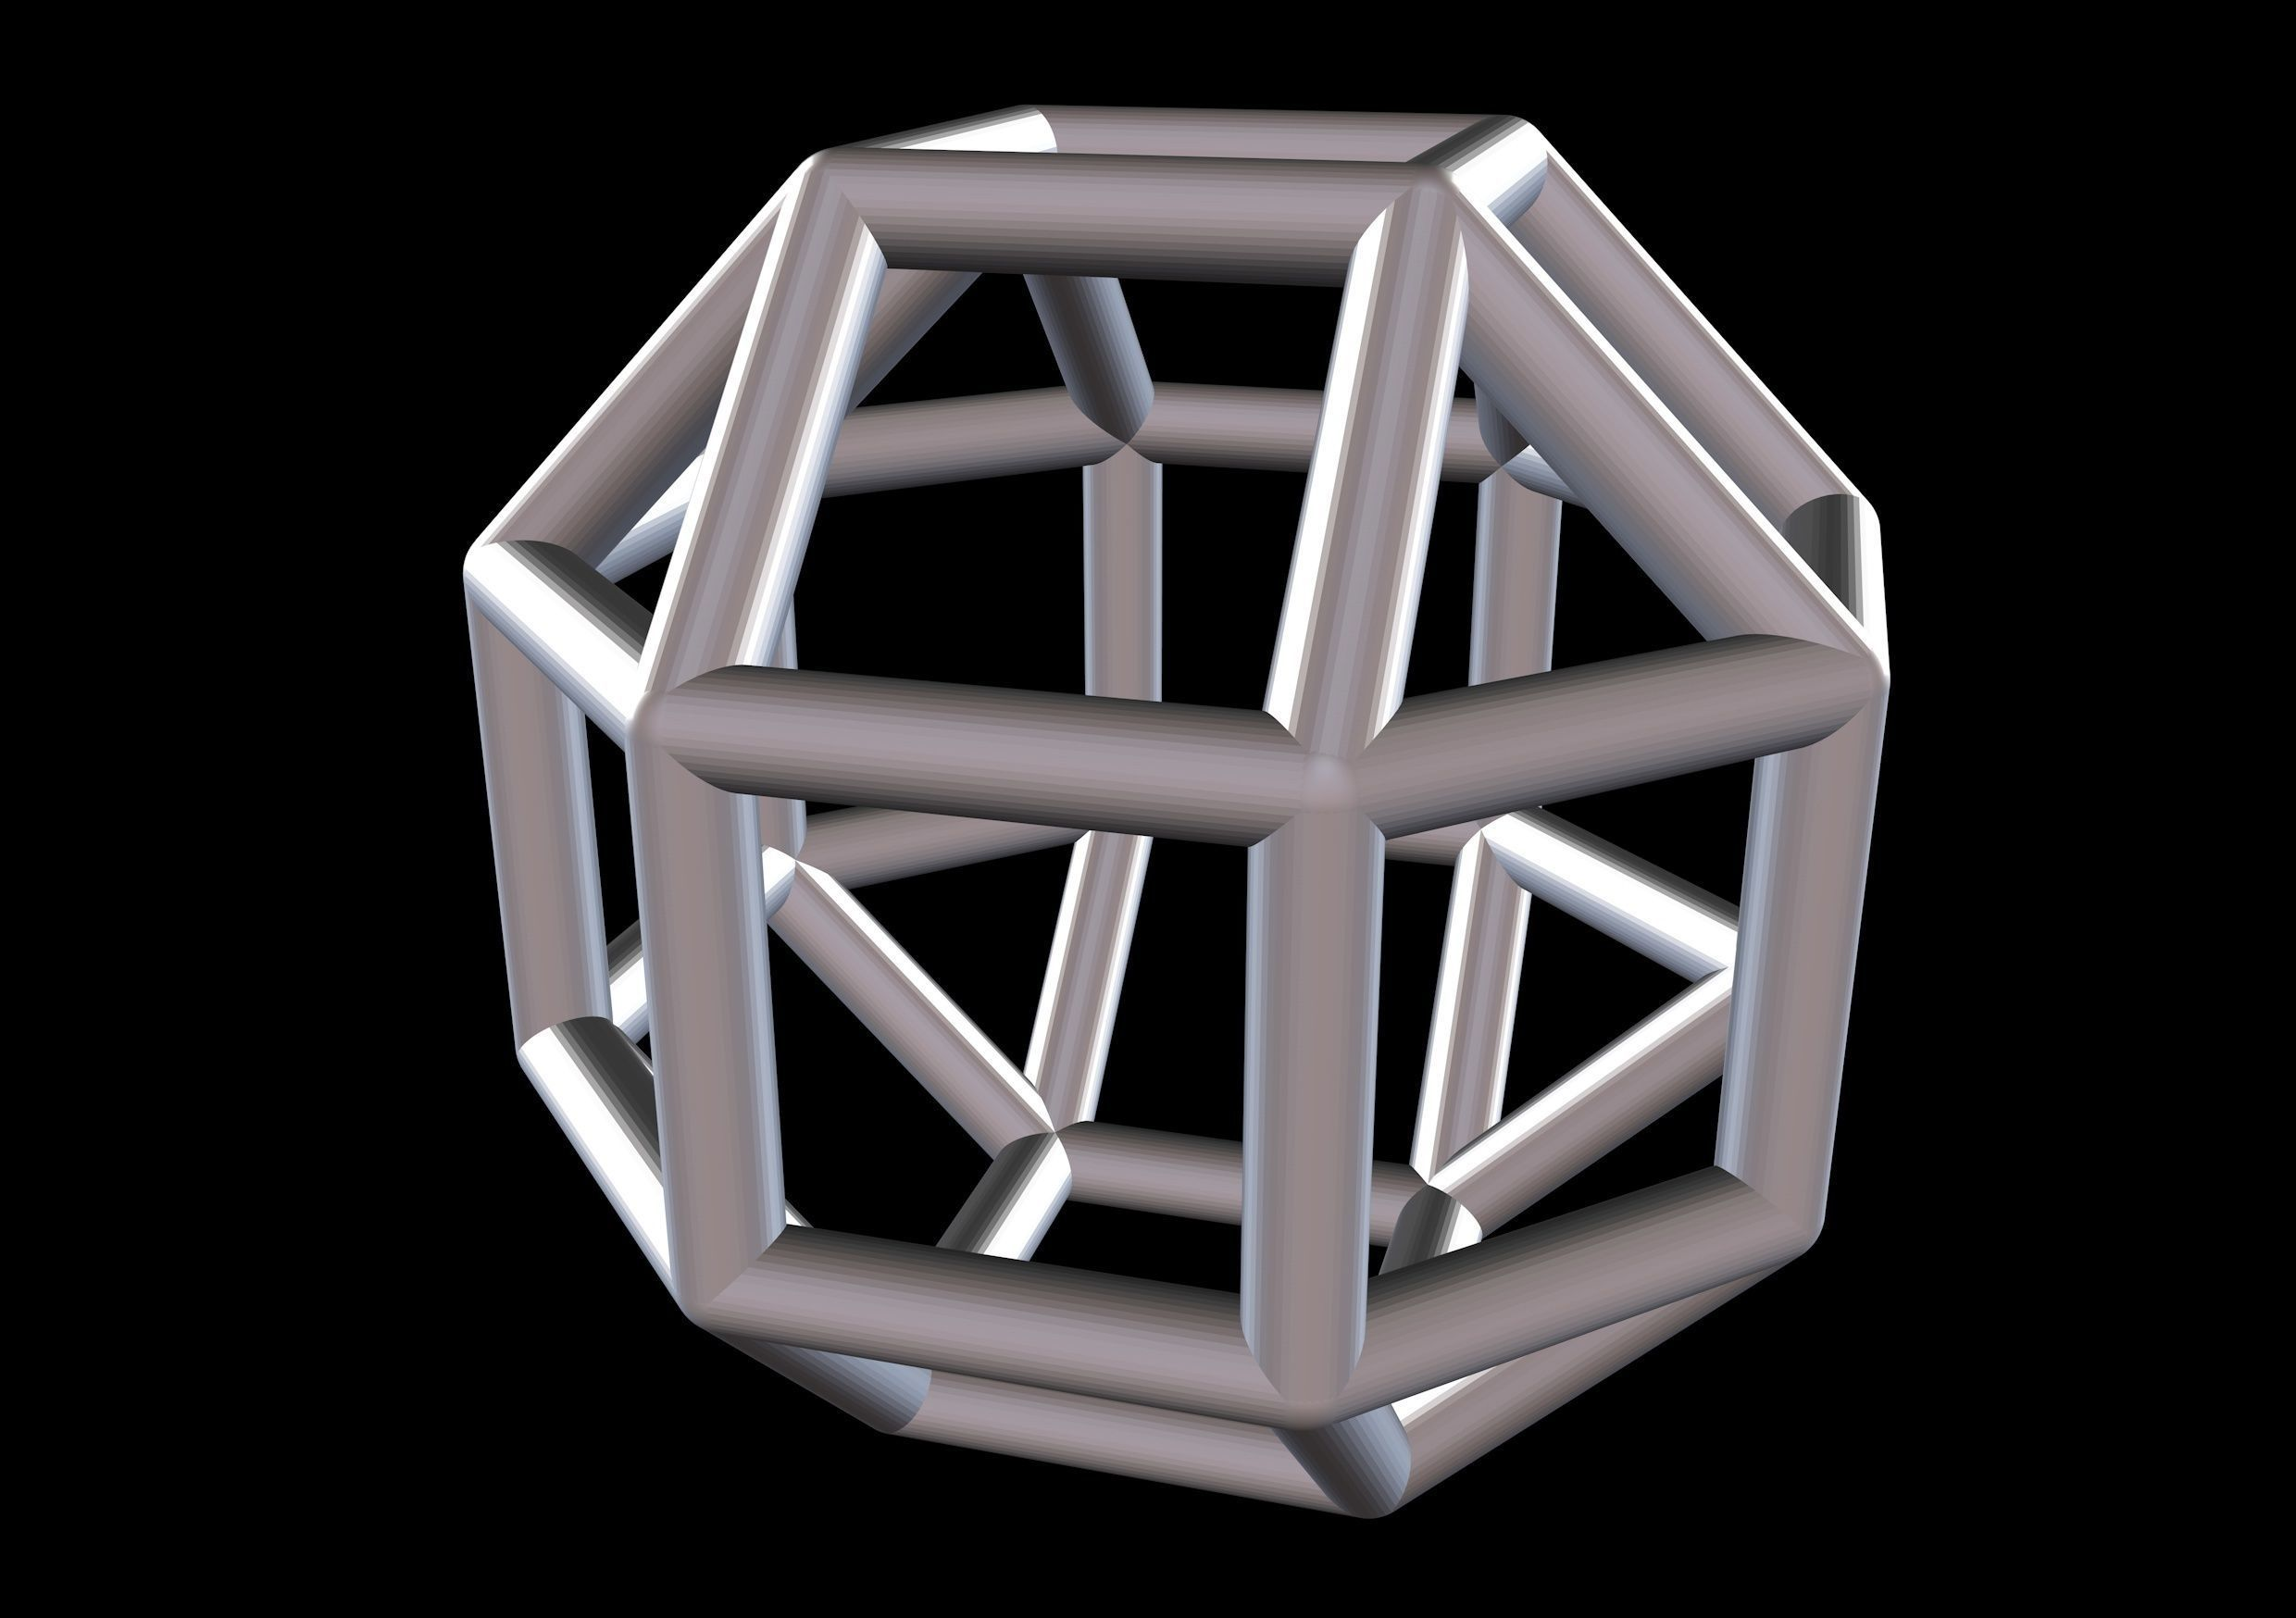 031 Mathart-Archimedean Solids-Small Rhombicuboctahedron 01-10cm